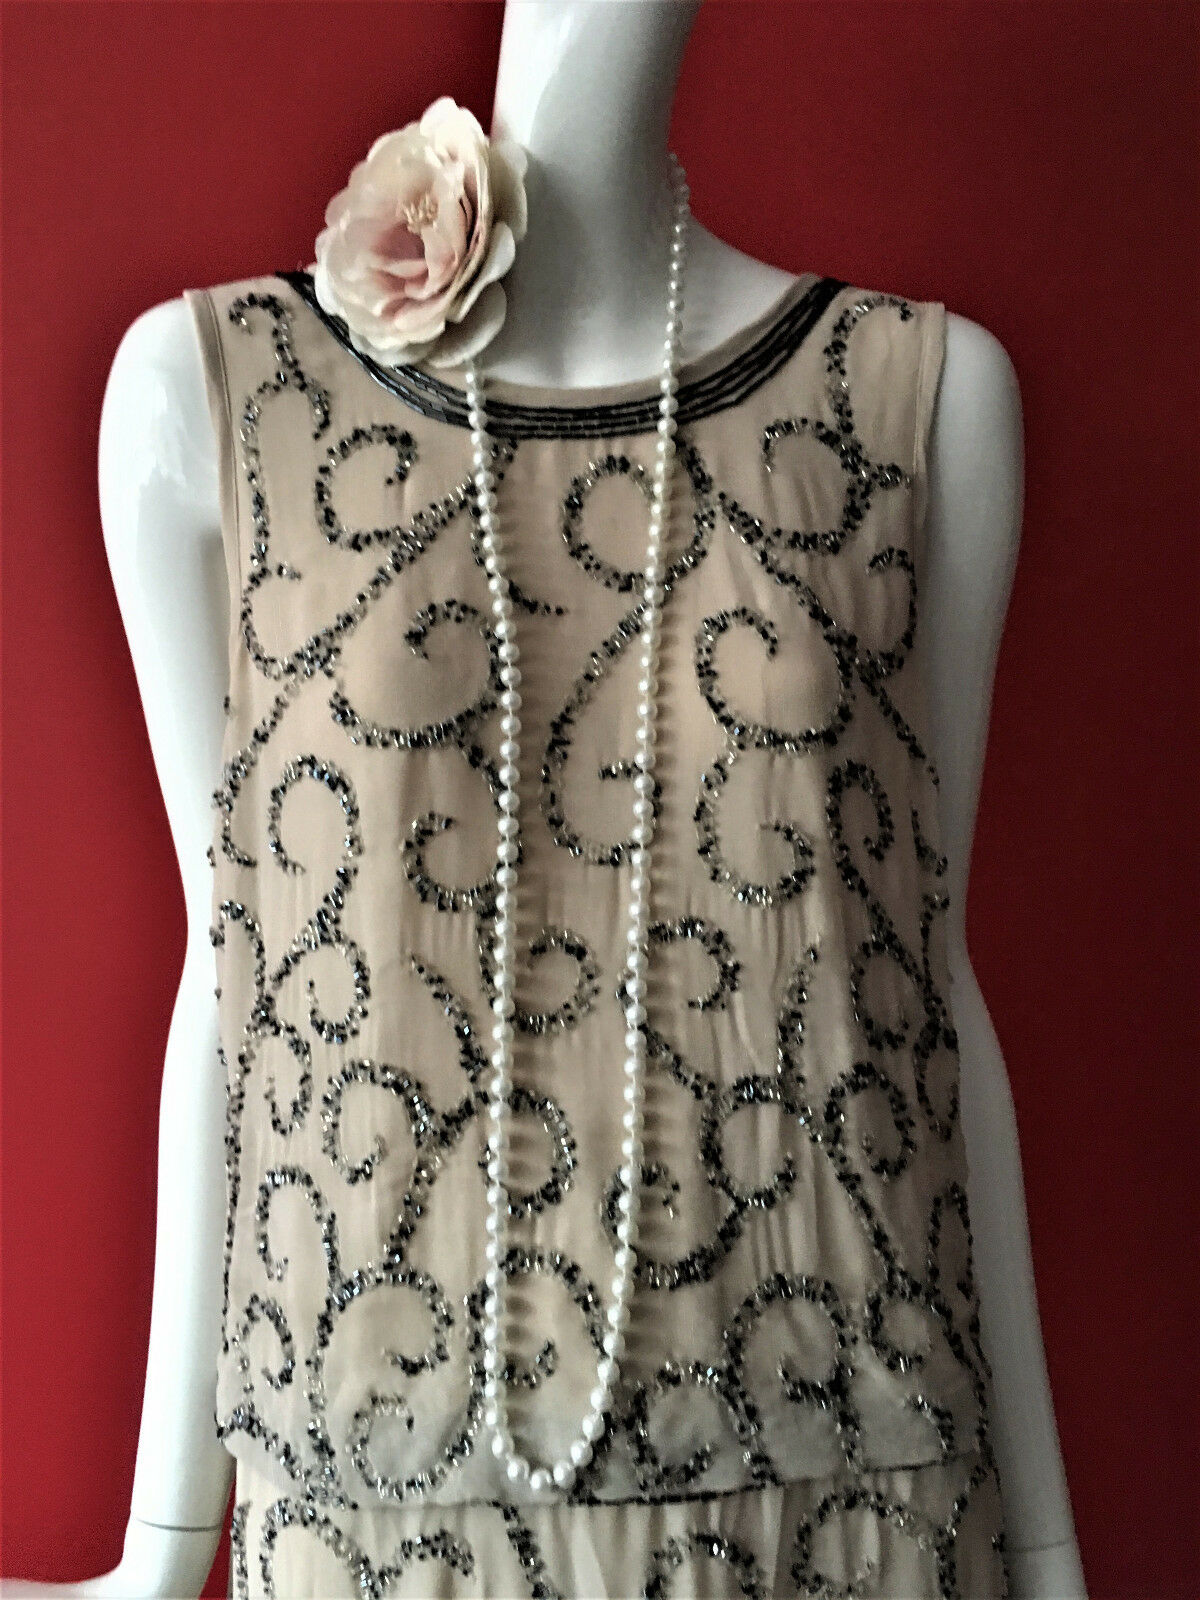 Frock & Frill Beaded Flapper 1920s Gatsby Charleston Charleston Charleston Party Dress Größe 16 BNWT 267031